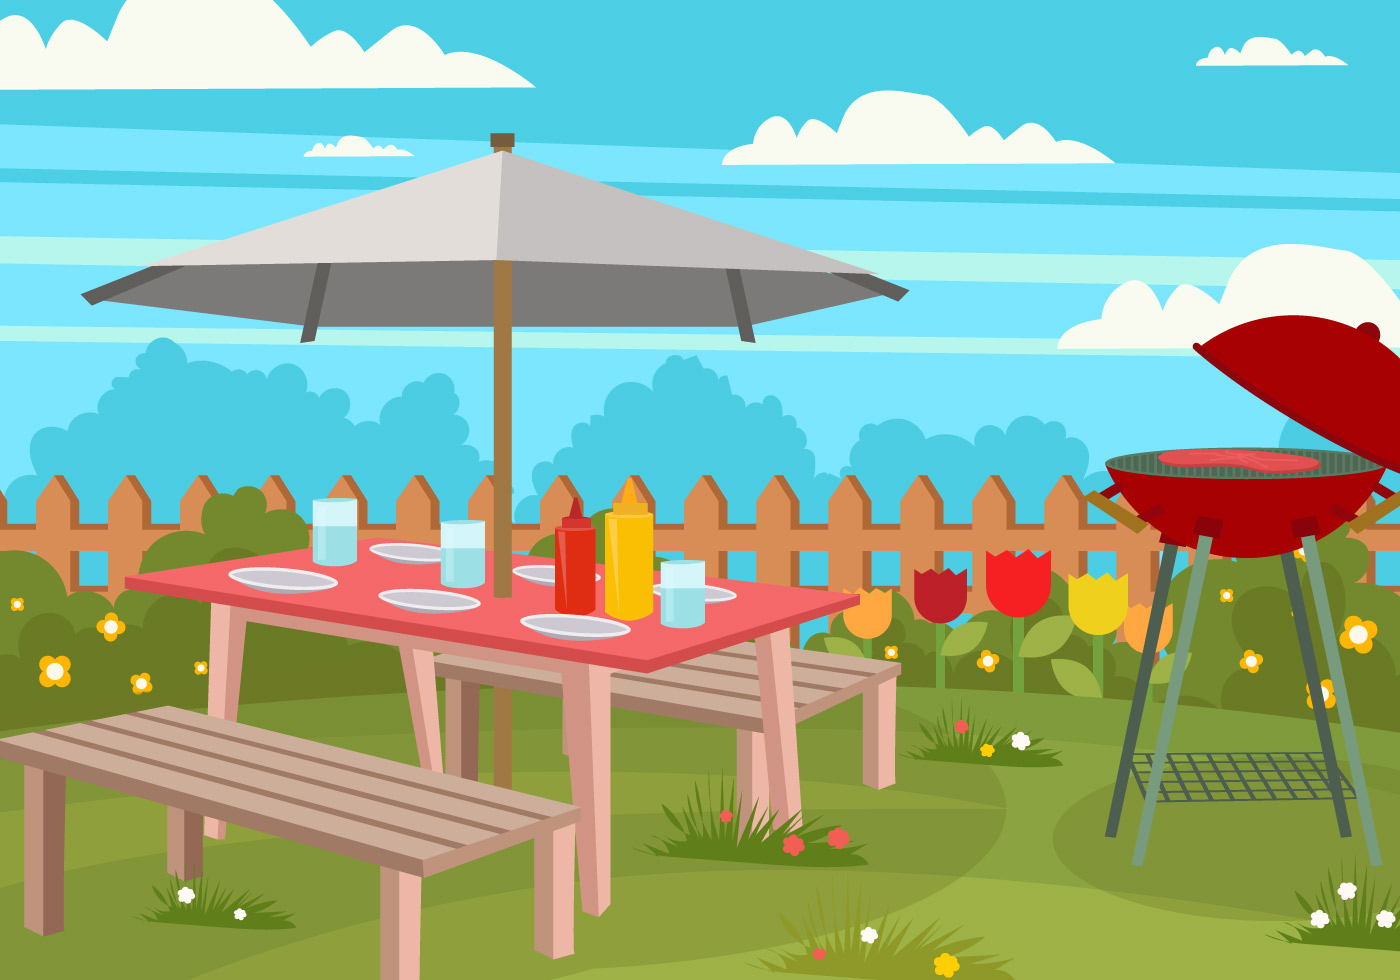 Picnic Lawn Chair In the Garden  Download Free Vector Art